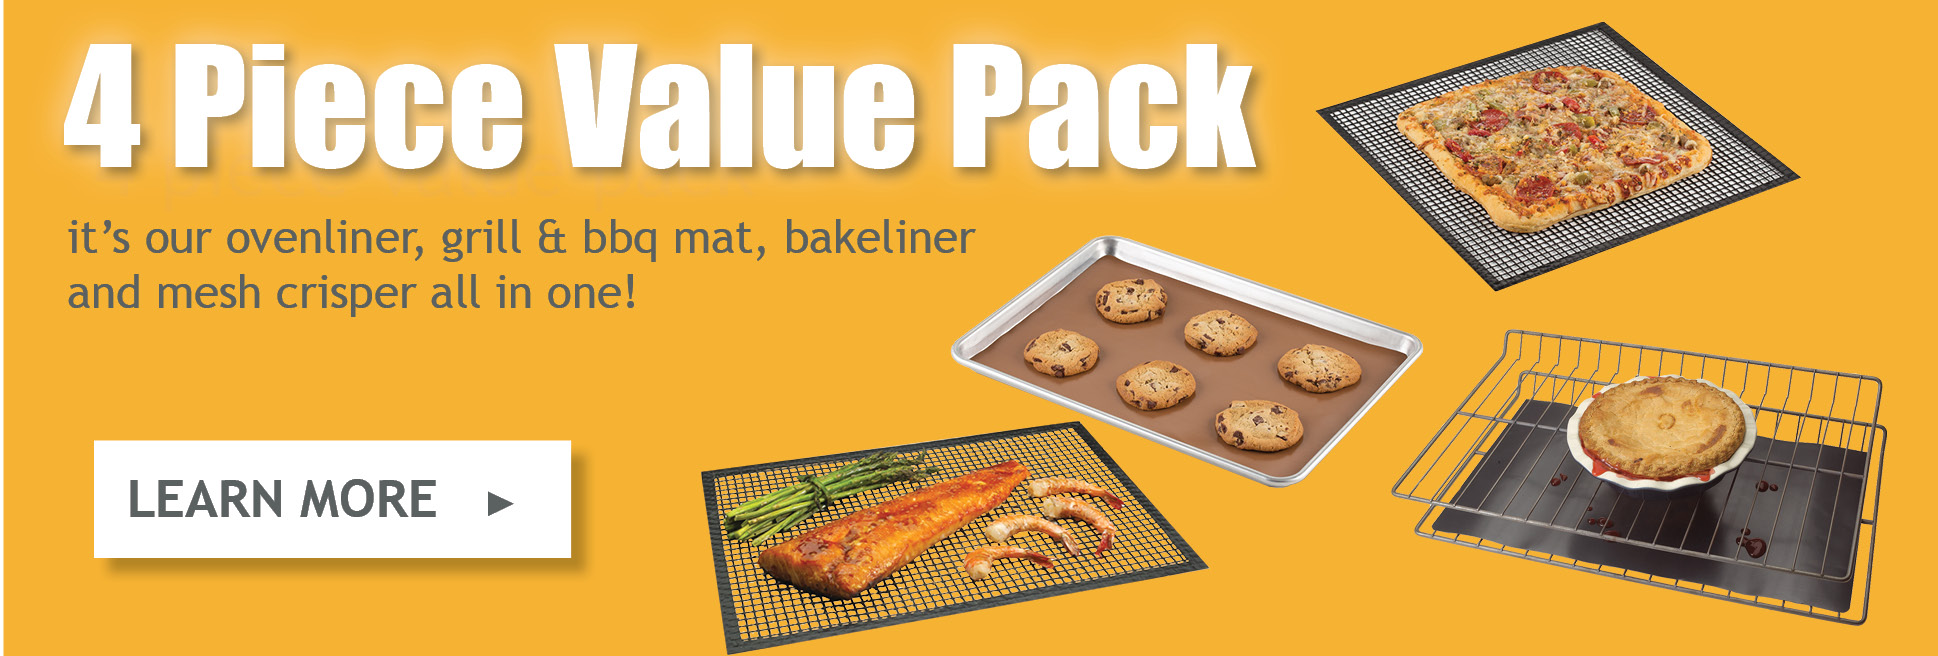 Chef\'s Planet 4 Piece Value Pack Ovenliner Bakeliner Grill BBQ Mat Mesh Crisper